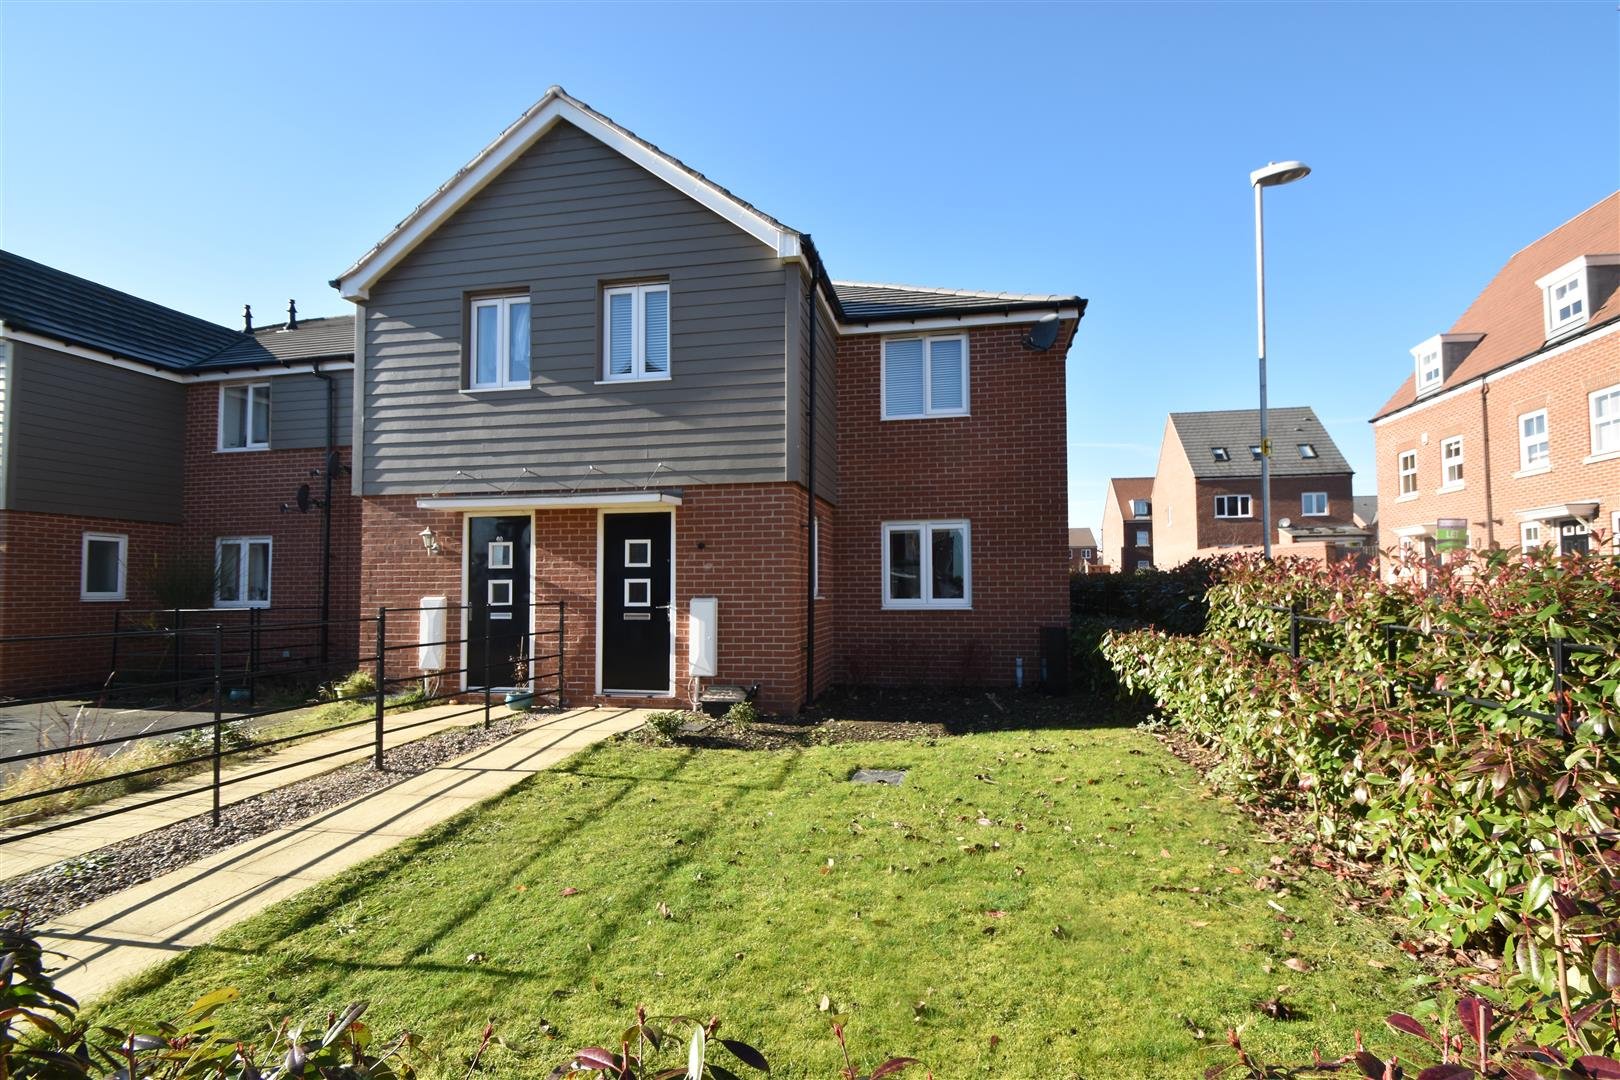 2 Bedrooms End Of Terrace House for sale in Lawley Way, Droitwich